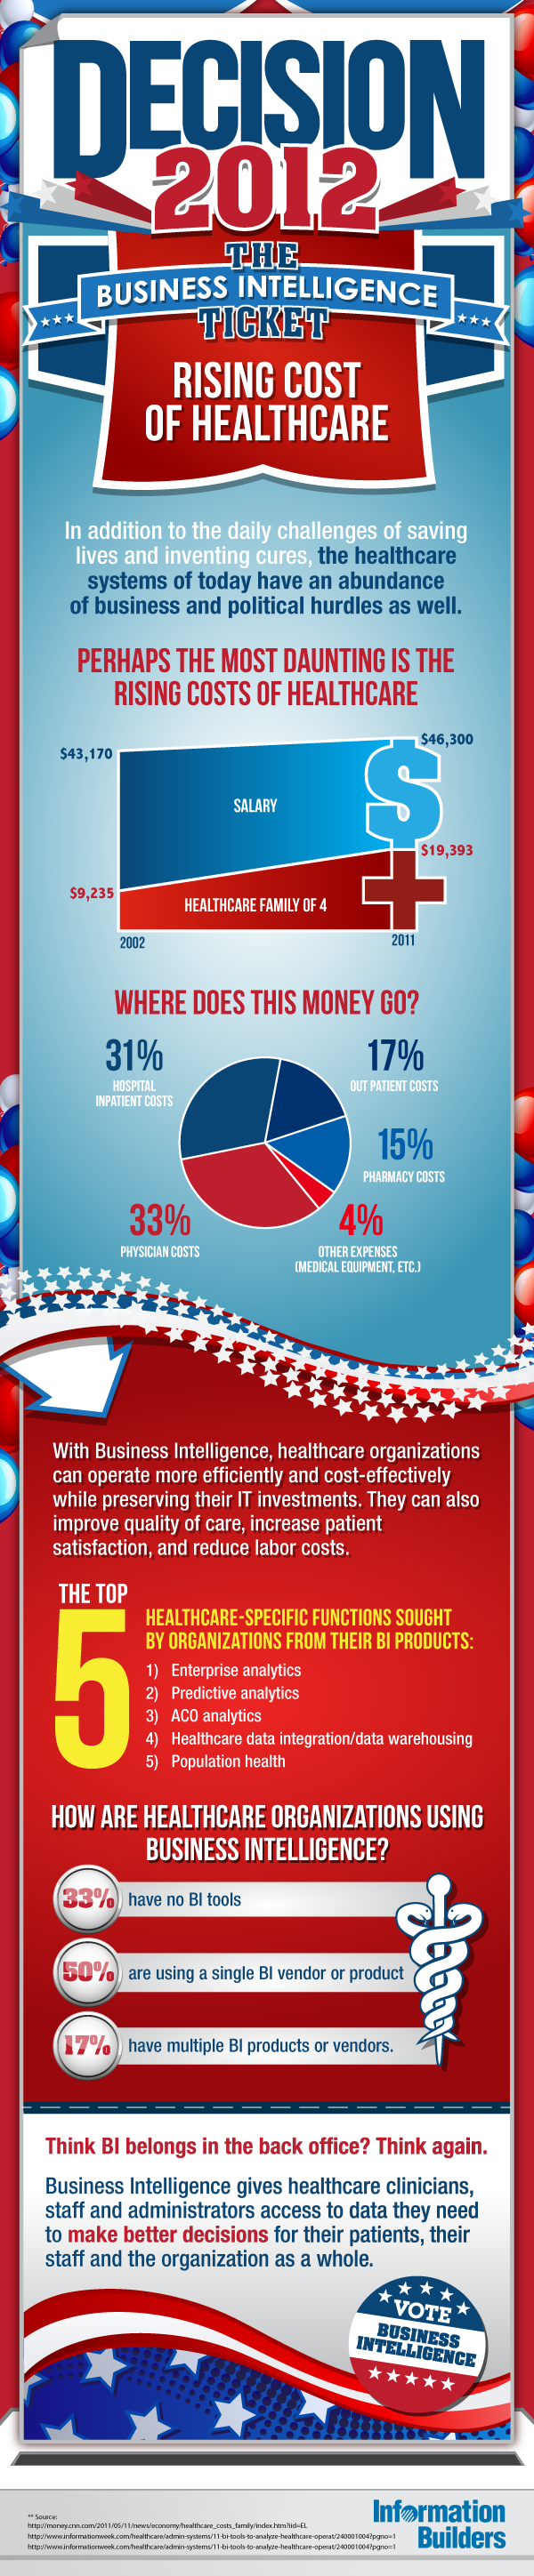 How Business Intelligence Tools Can Reduce Rising Healthcare Costs